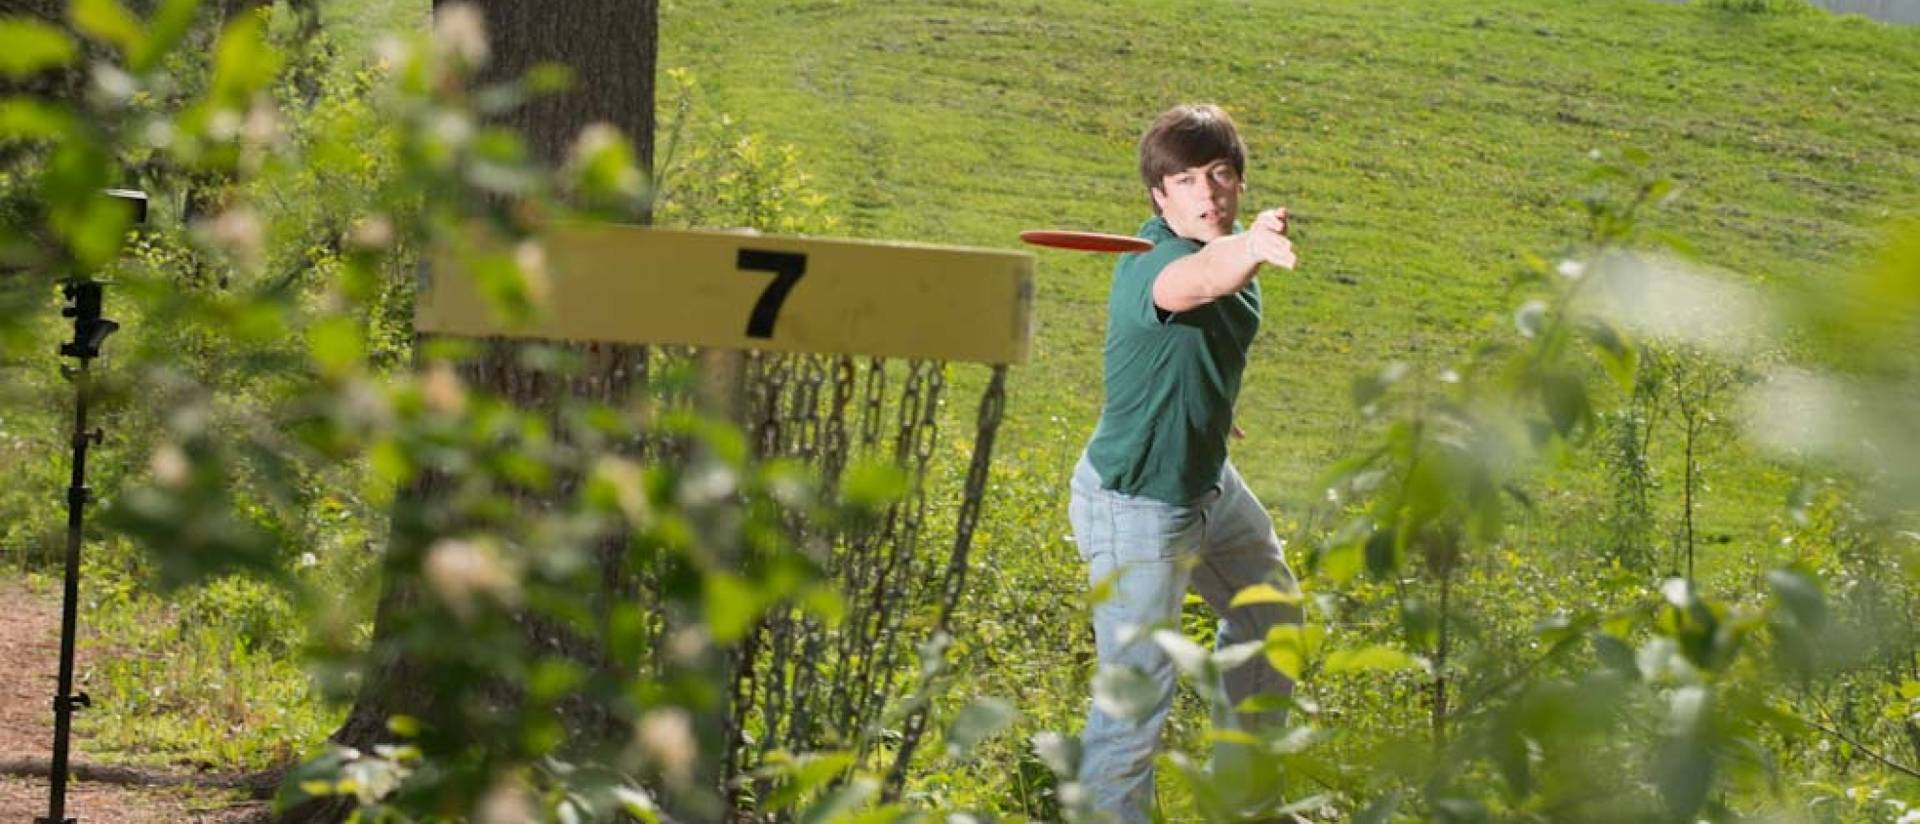 Student playing disc golf